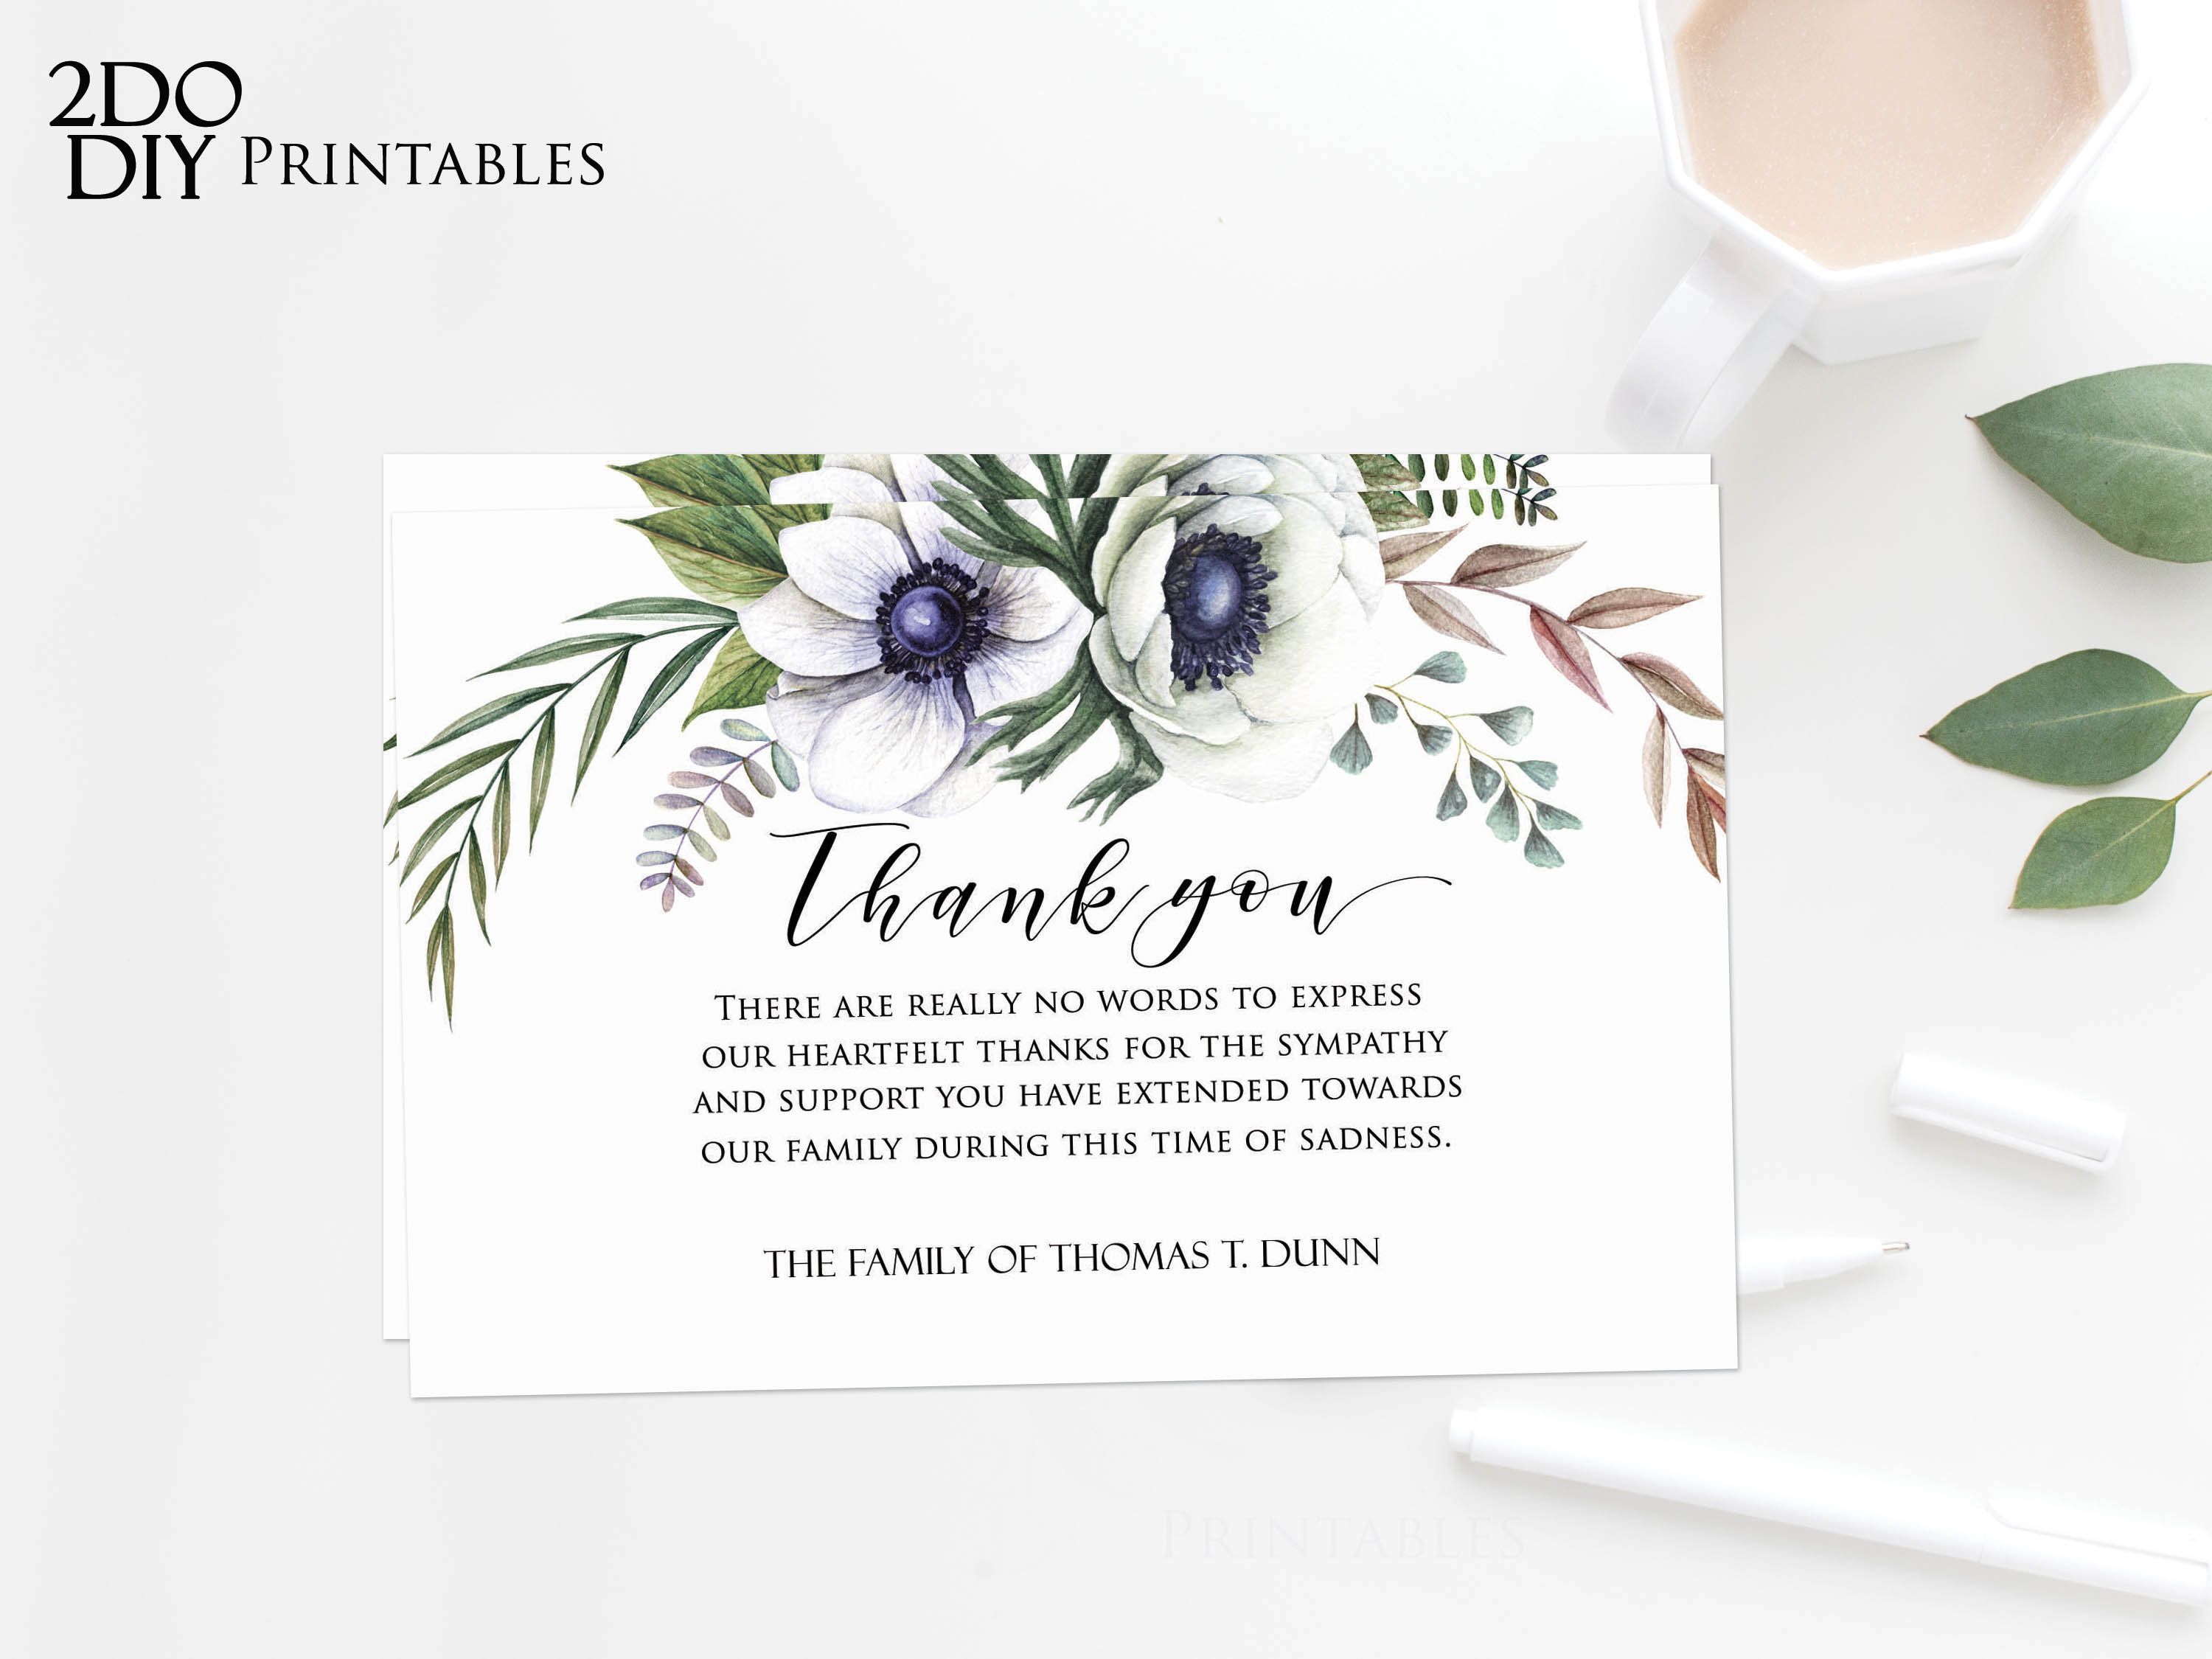 Editable Pdf Funeral Thank You Card Memorial Editable Etsy In 2021 Sympathy Thank You Cards Funeral Thank You Cards Thank You Card Template